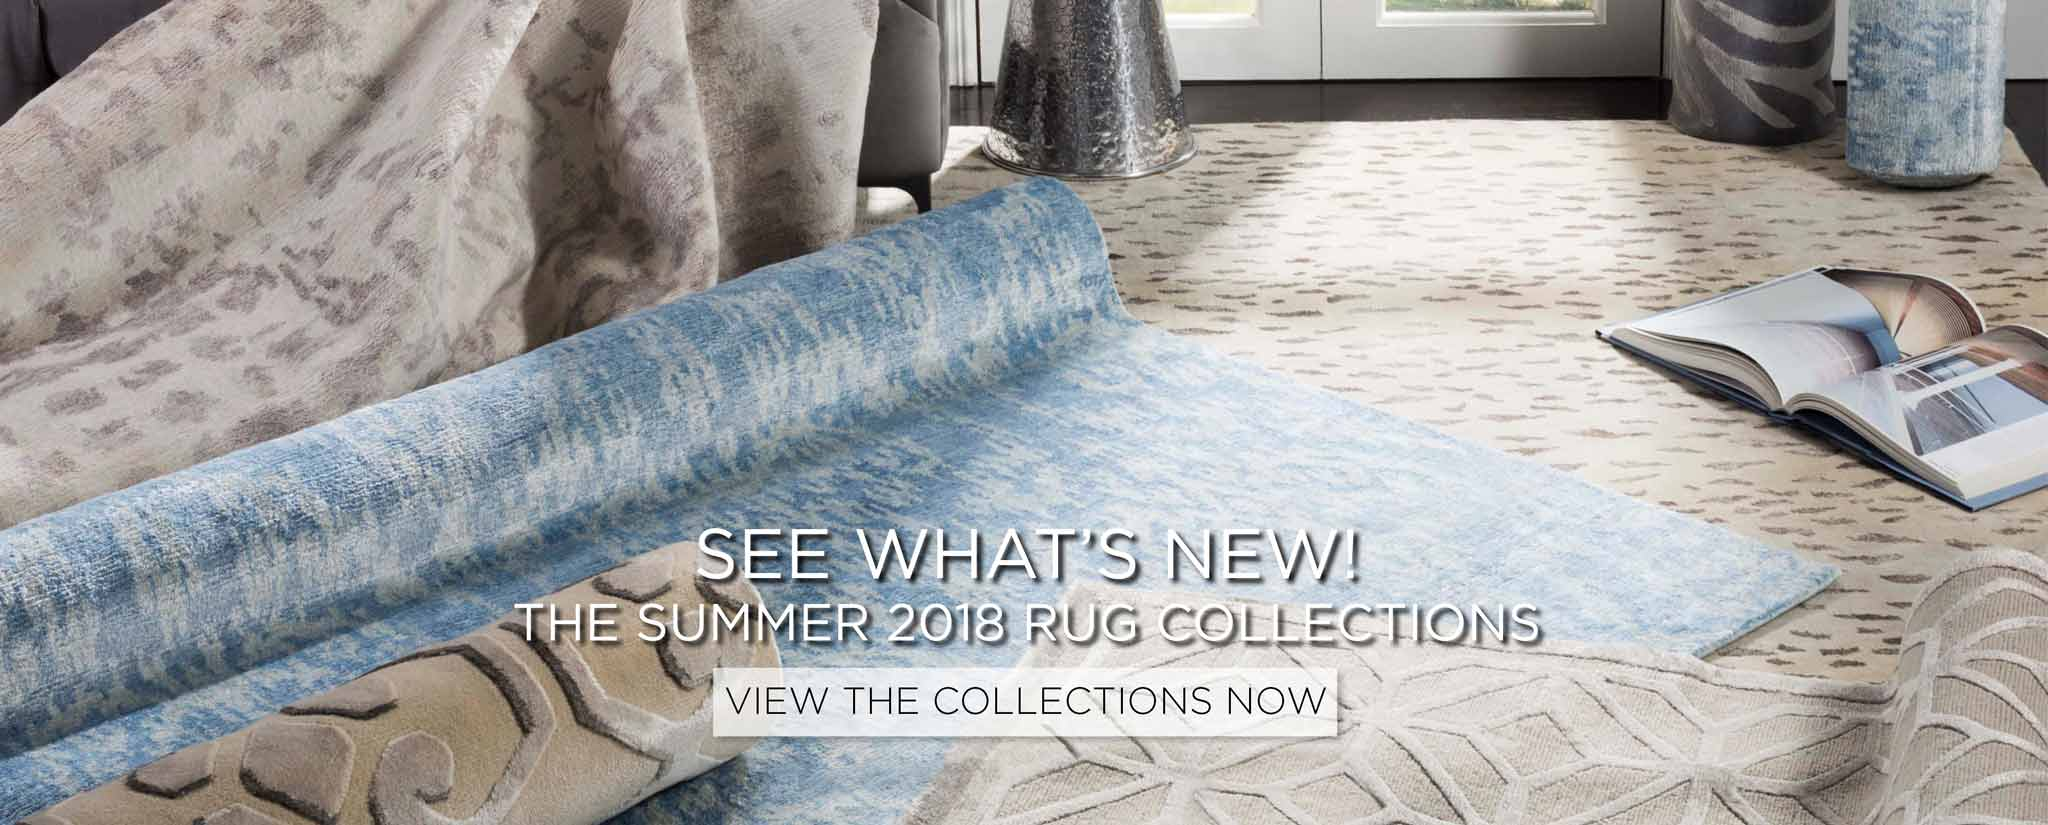 Rug Collections